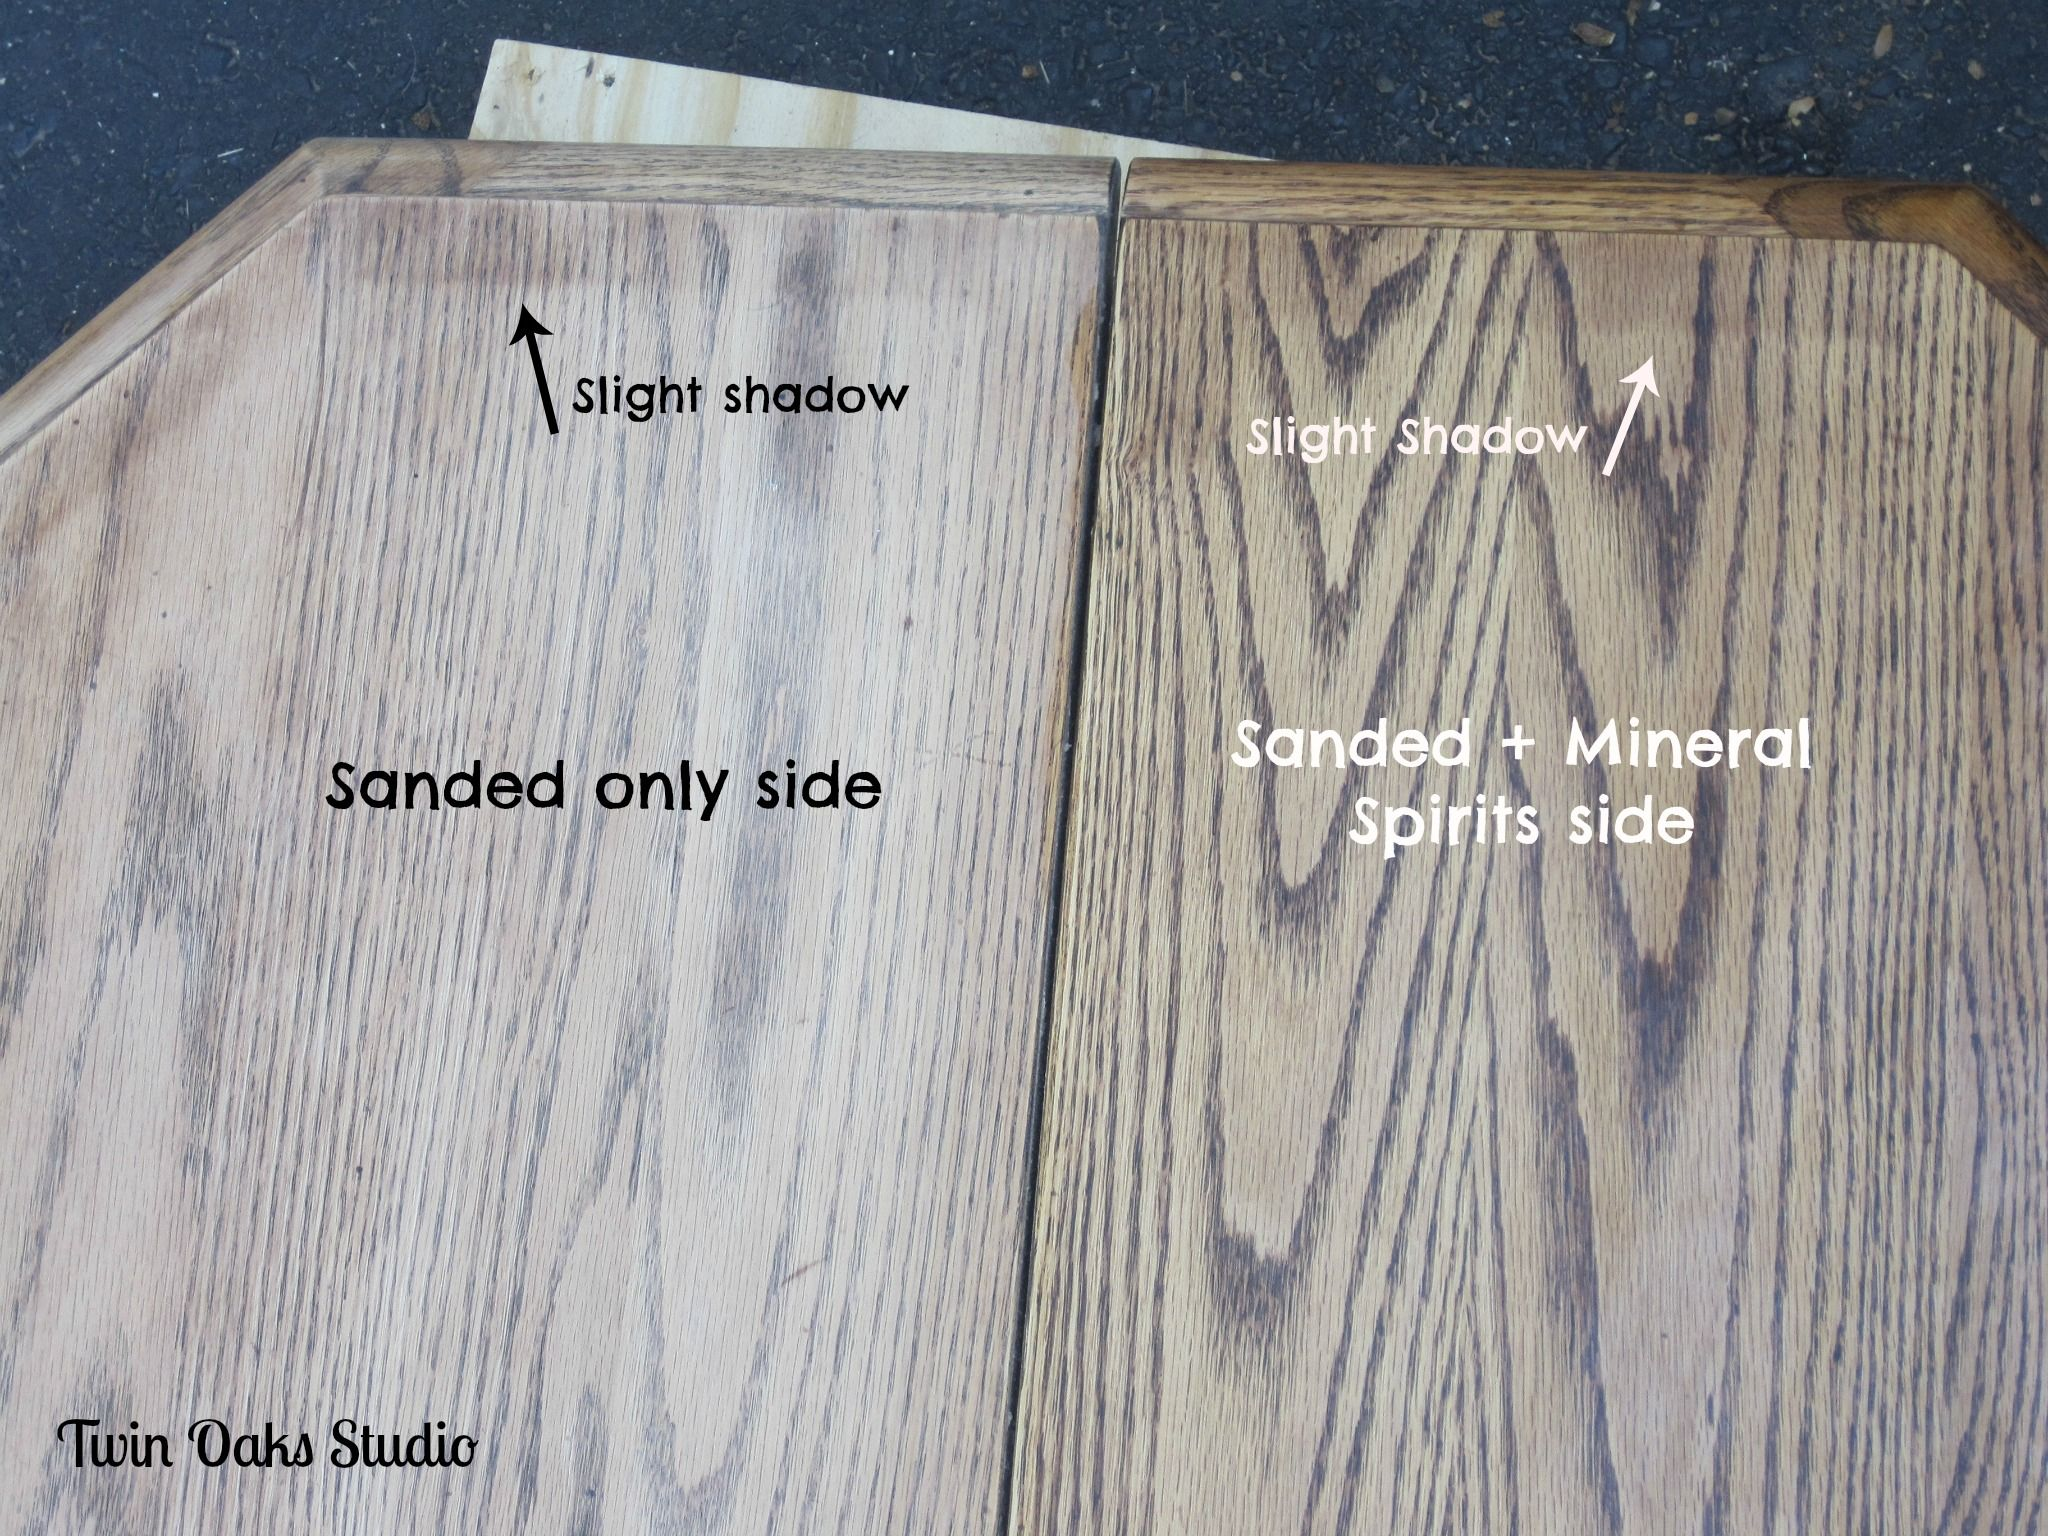 Wipe mineral spirits on freshly sanded wood to mimick stain. It ...